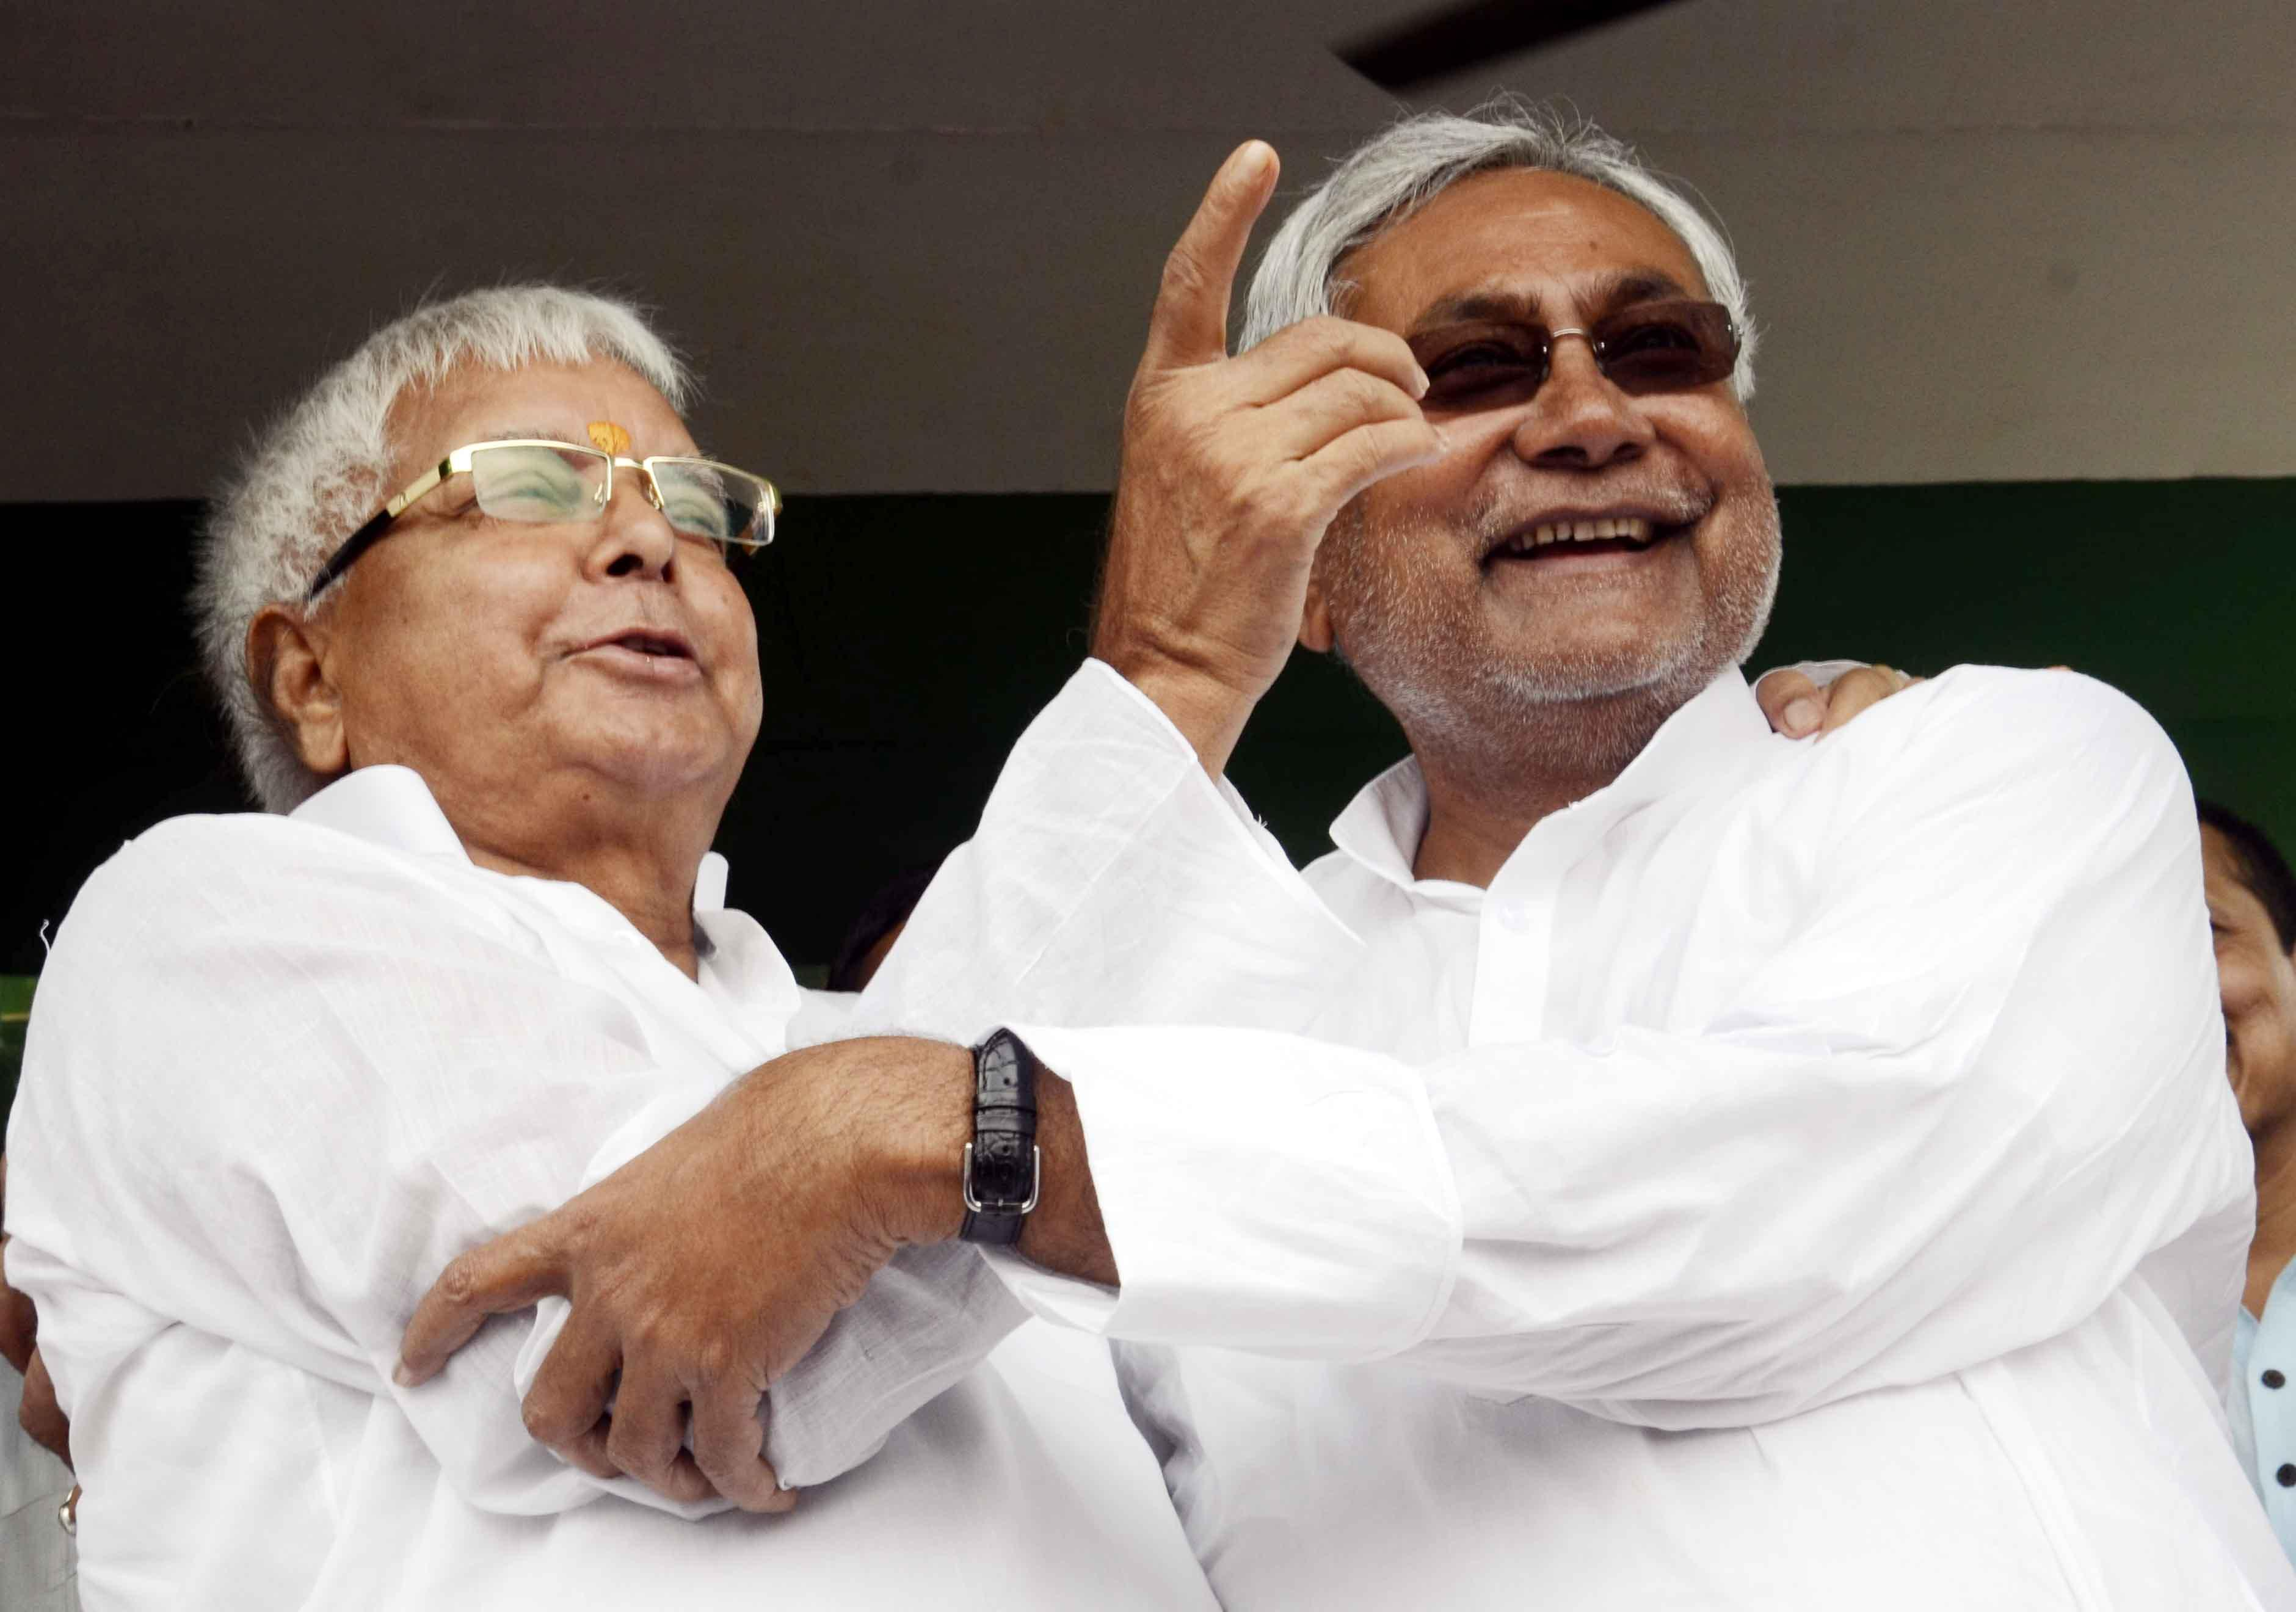 Former Chief Ministers of Bihar, RJD chief Lalu Prasad Yadav and JD-U leader Nitish Kumar during a rally in Hajipur of Bihar on Aug 11, 2014. (Photo: IANS)